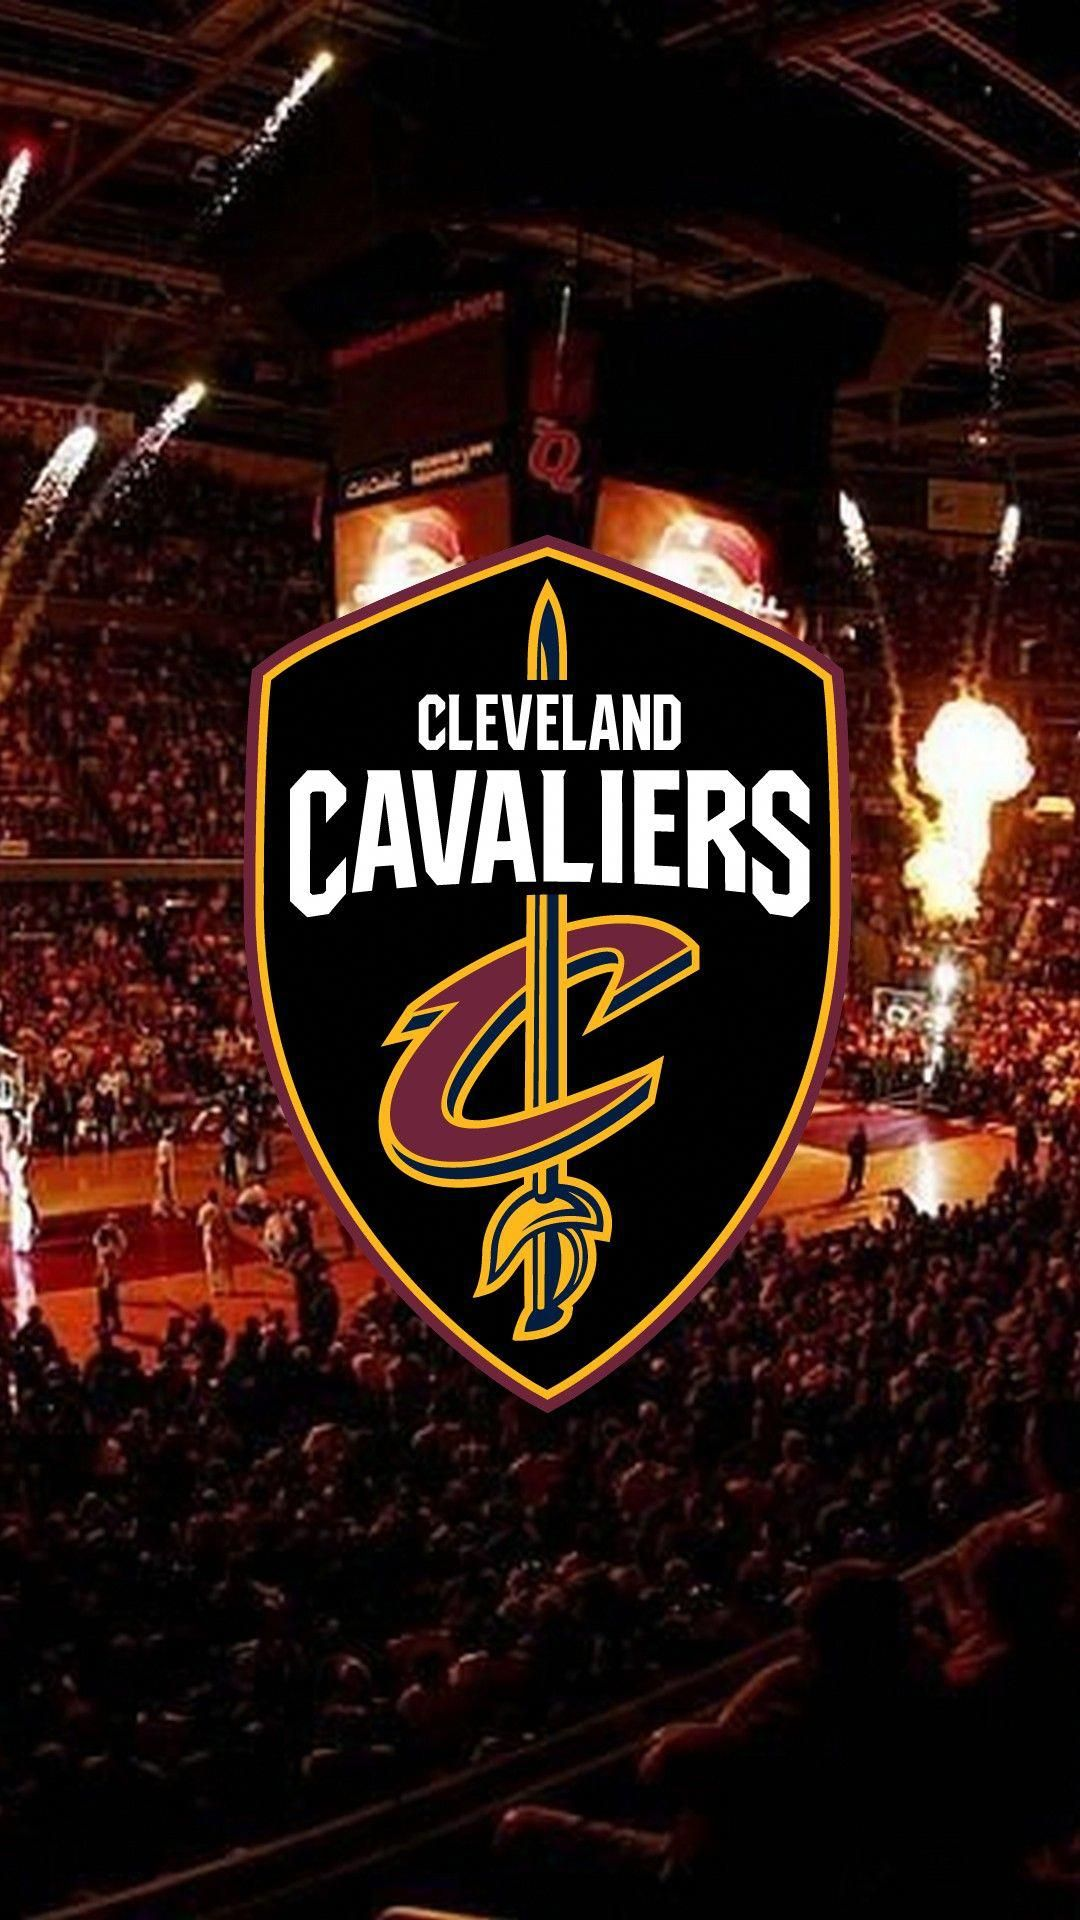 Wallpaper Mobile Cleveland Cavaliers Best Basketball Wallpapers Basketballimages Cavaliers Wallpaper Basketball Wallpaper Cleveland Cavaliers Basketball